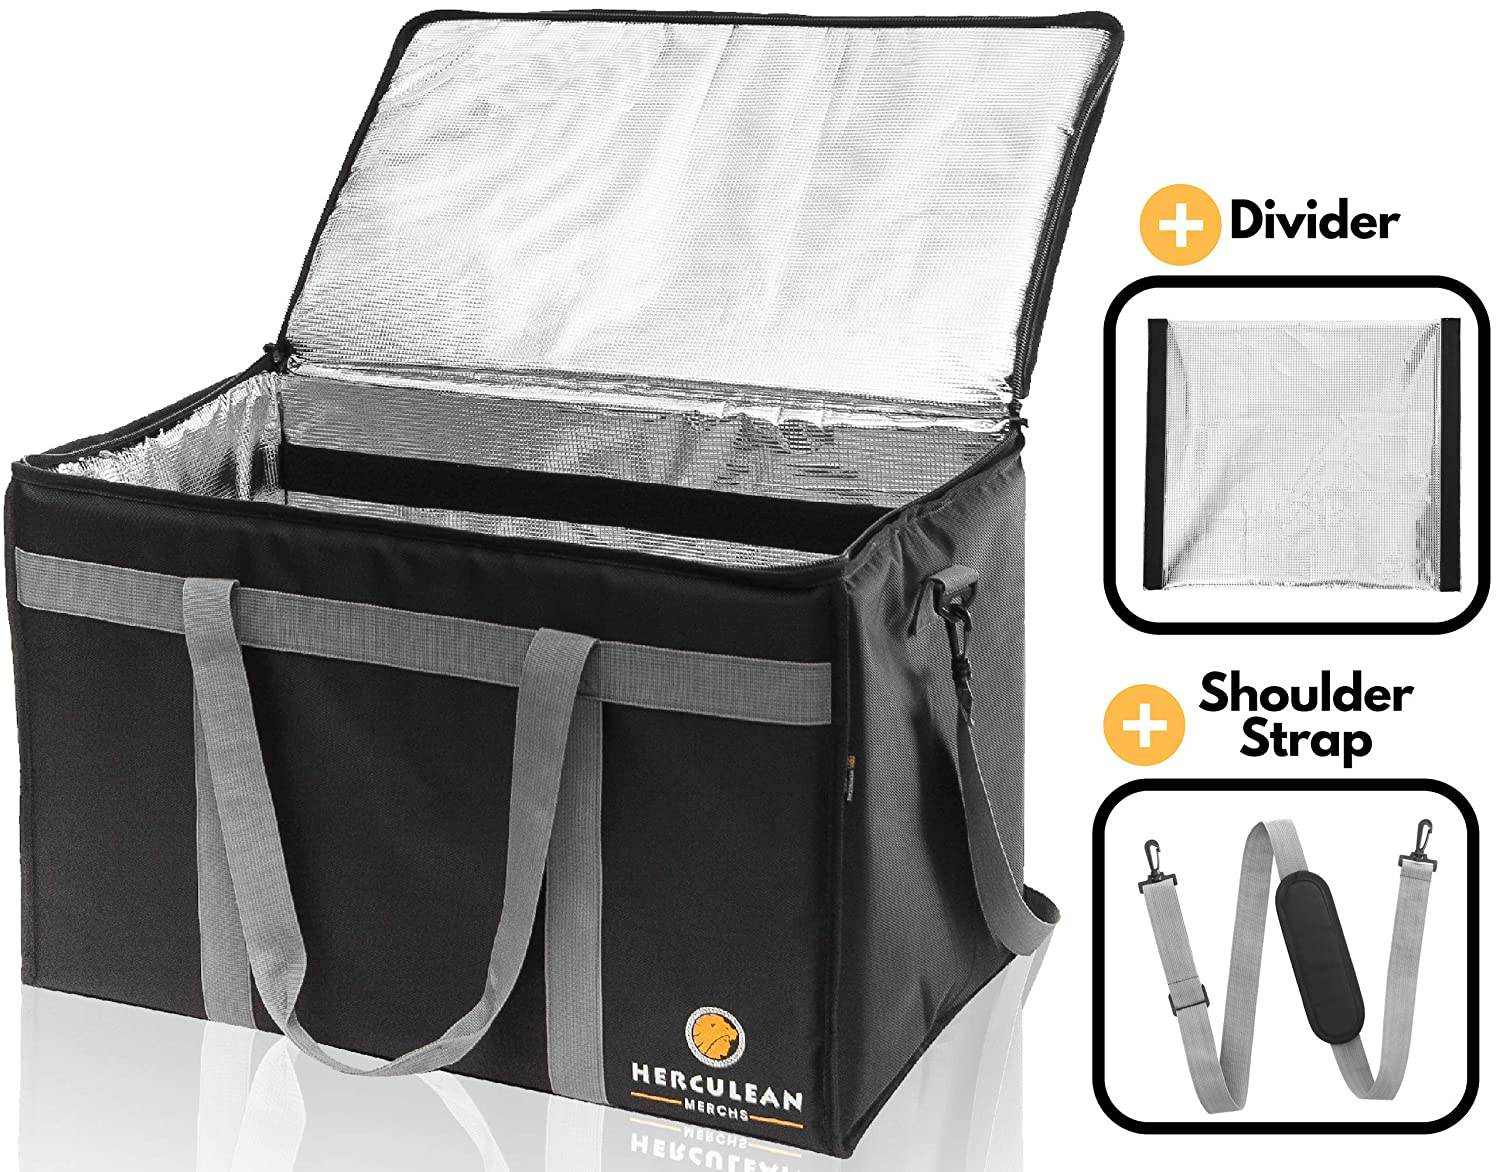 Commercial Large Premium Food Delivery Bag w/Divider | Thermal Insulated to Keep Cold or Hot Food | Durable Heavy Duty | Ideal for Catering Transport, Grocery Carrier, Ubereats, Doordash, Grubhub